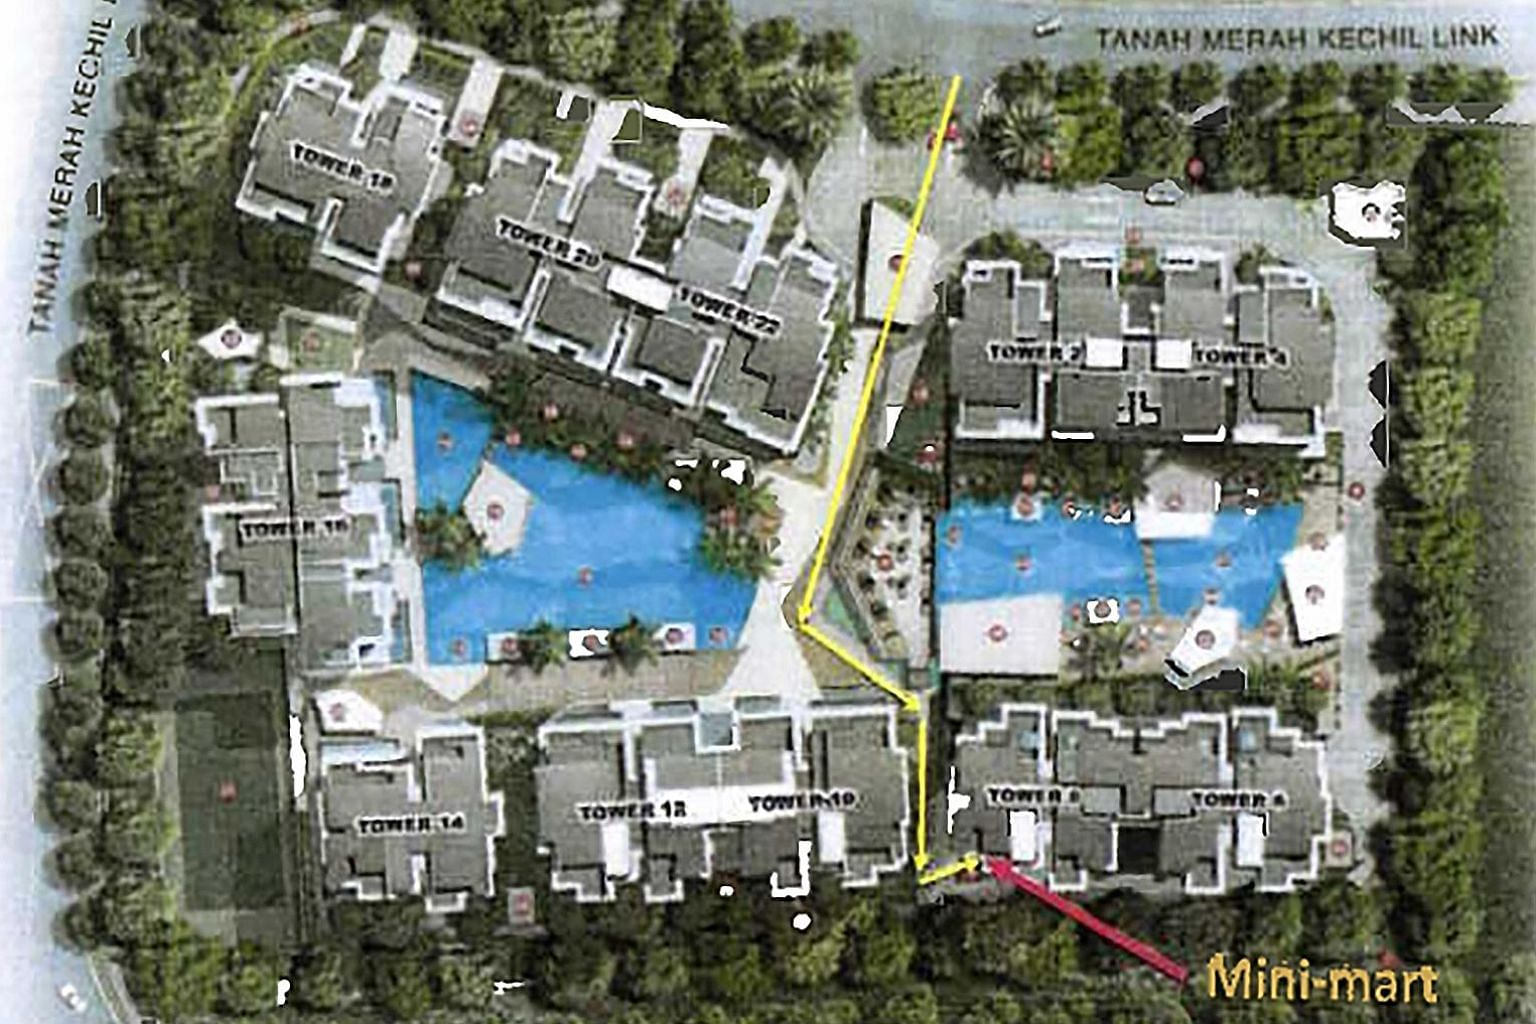 A visitor had to pass by residential blocks and two swimming pools in the common areas of Urban Vista condo to get to the minimart, which was located at the far end from the entrance to the property.